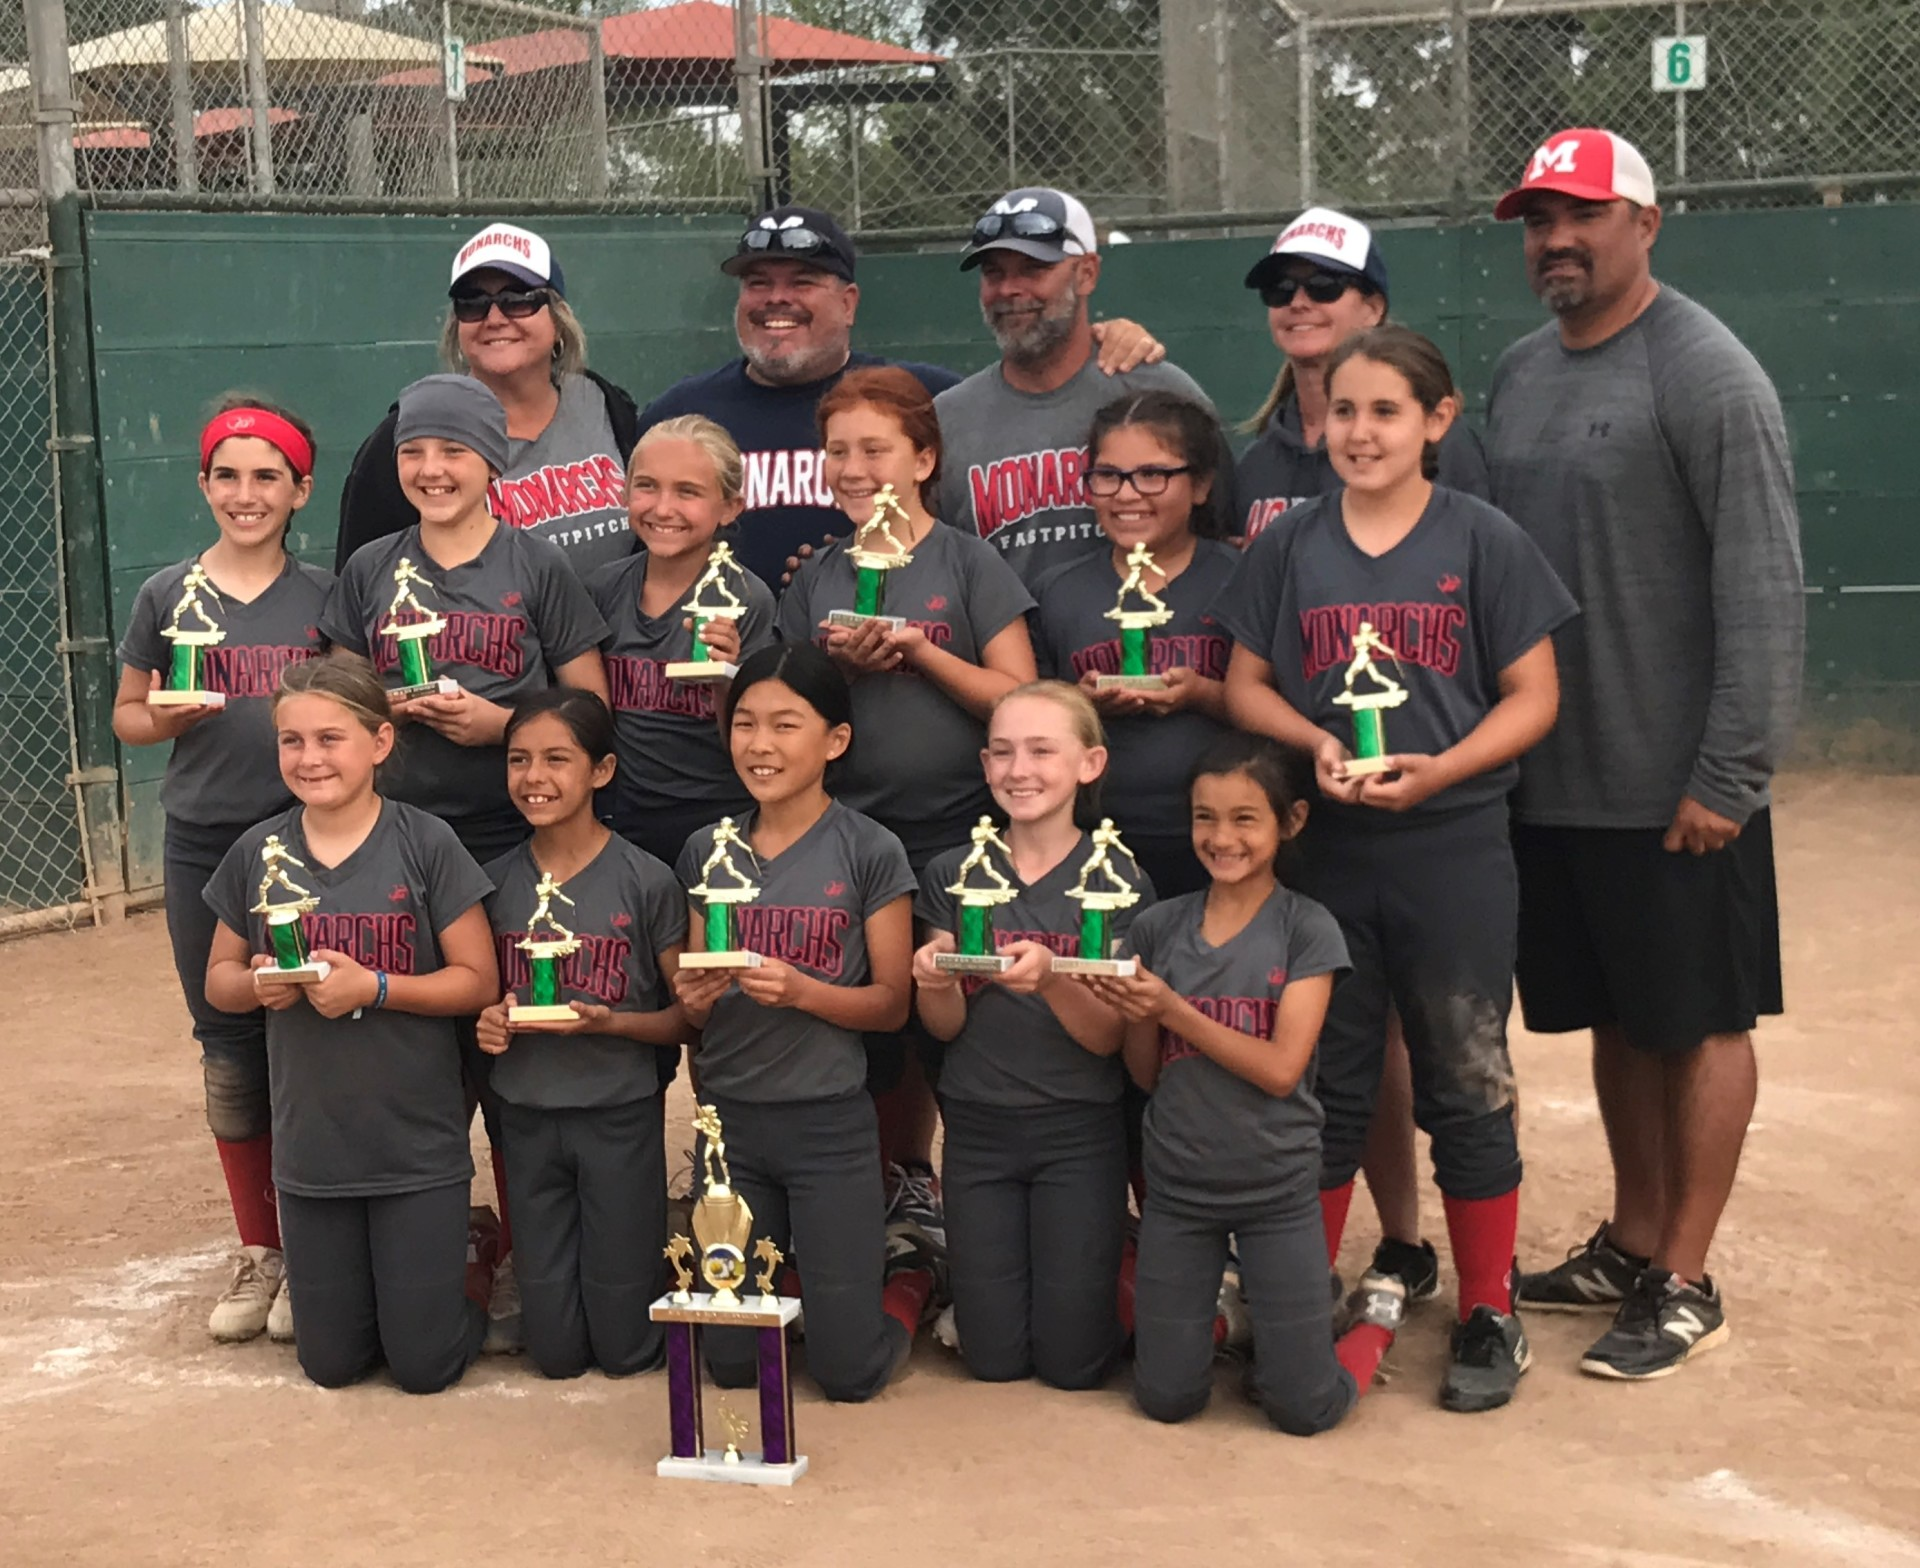 10u - Runner Up - Monarchs